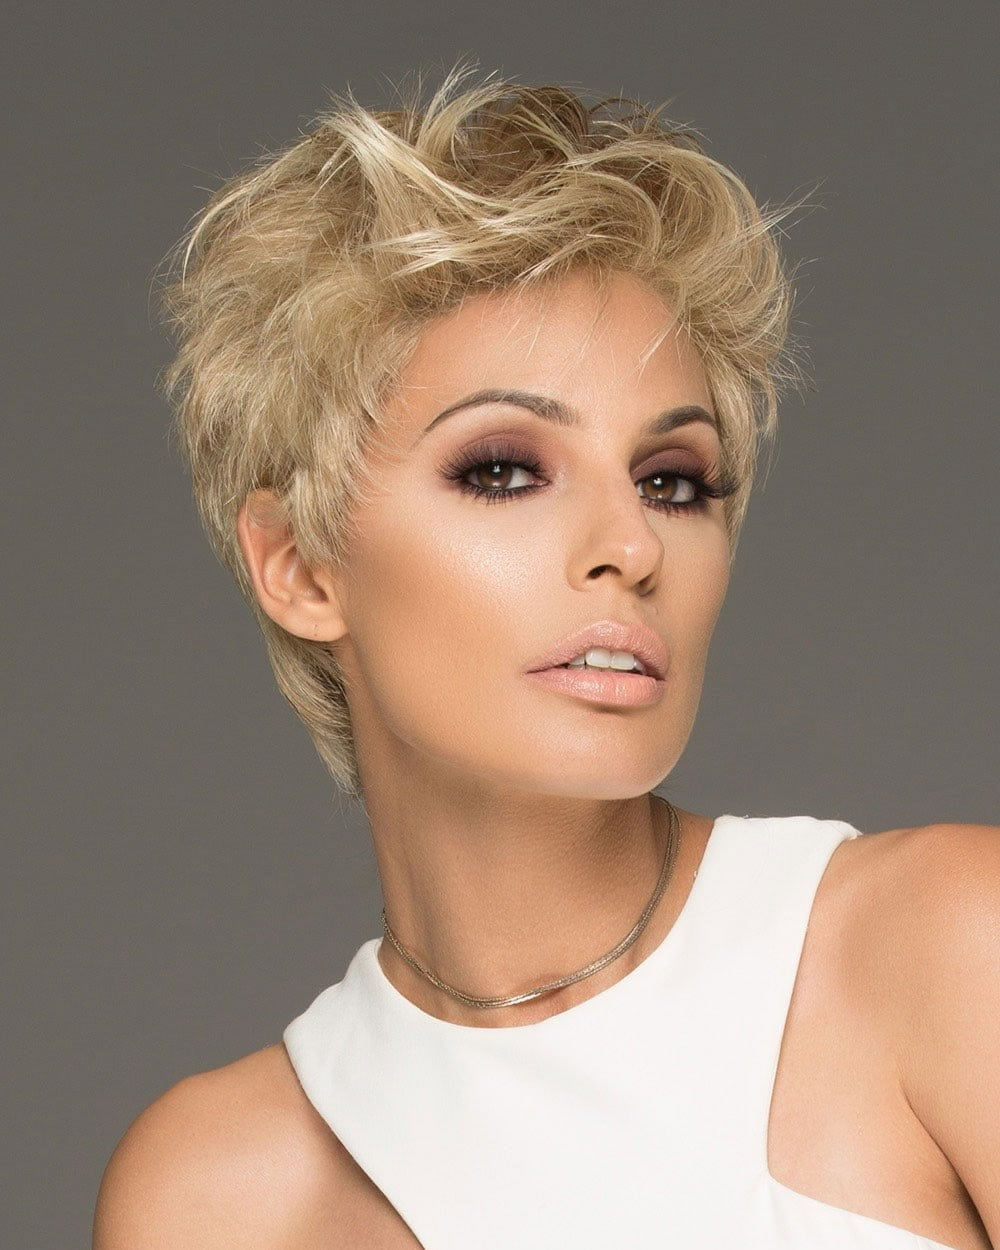 pixie haircut styles 25 ultra hairstyles pixie haircuts amp hair color 1077